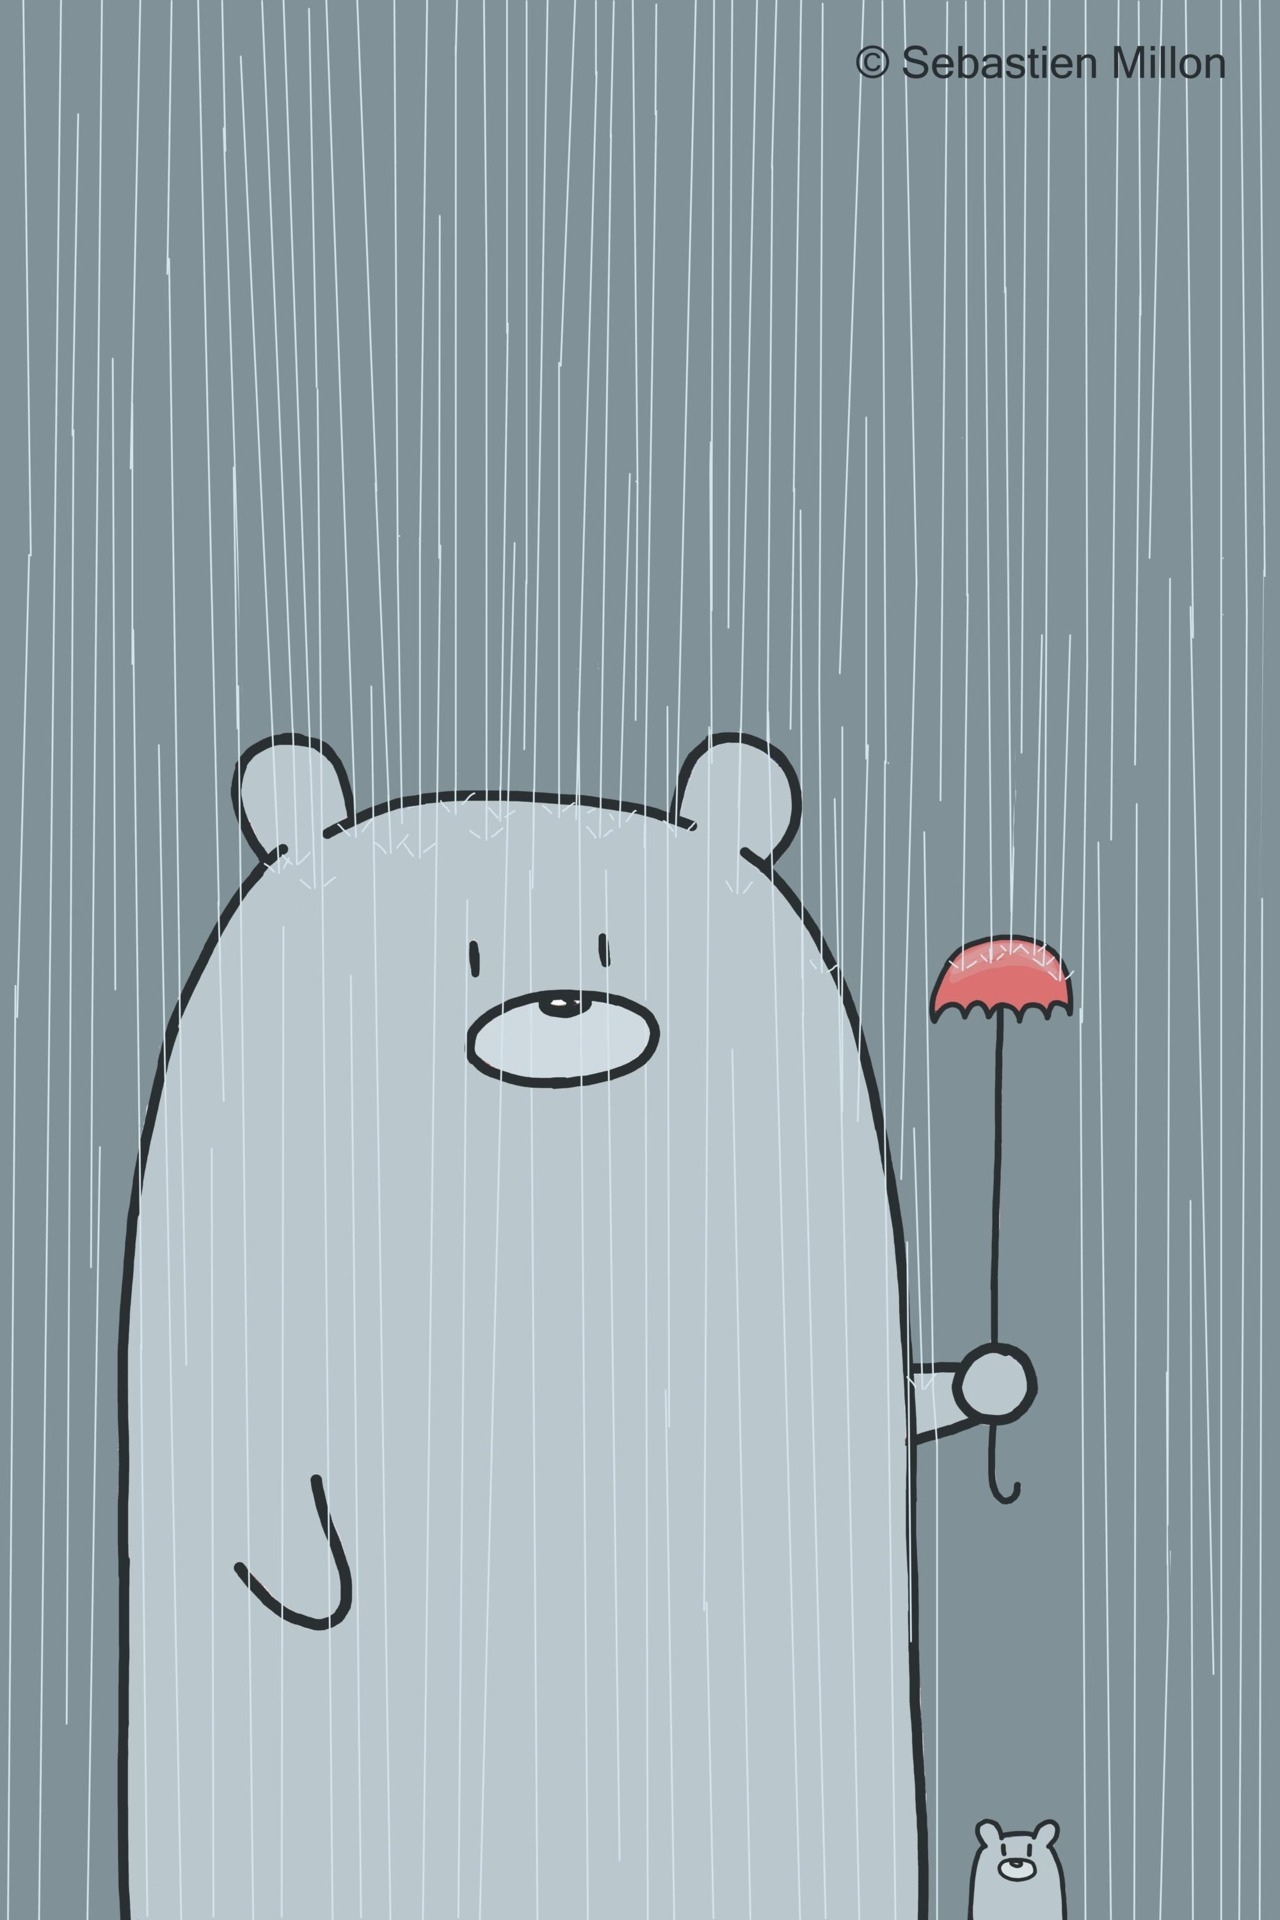 Aww!  :3 Illustration by ©sebastienmillon:  Father holds a little umbrella to keep his son dry :)